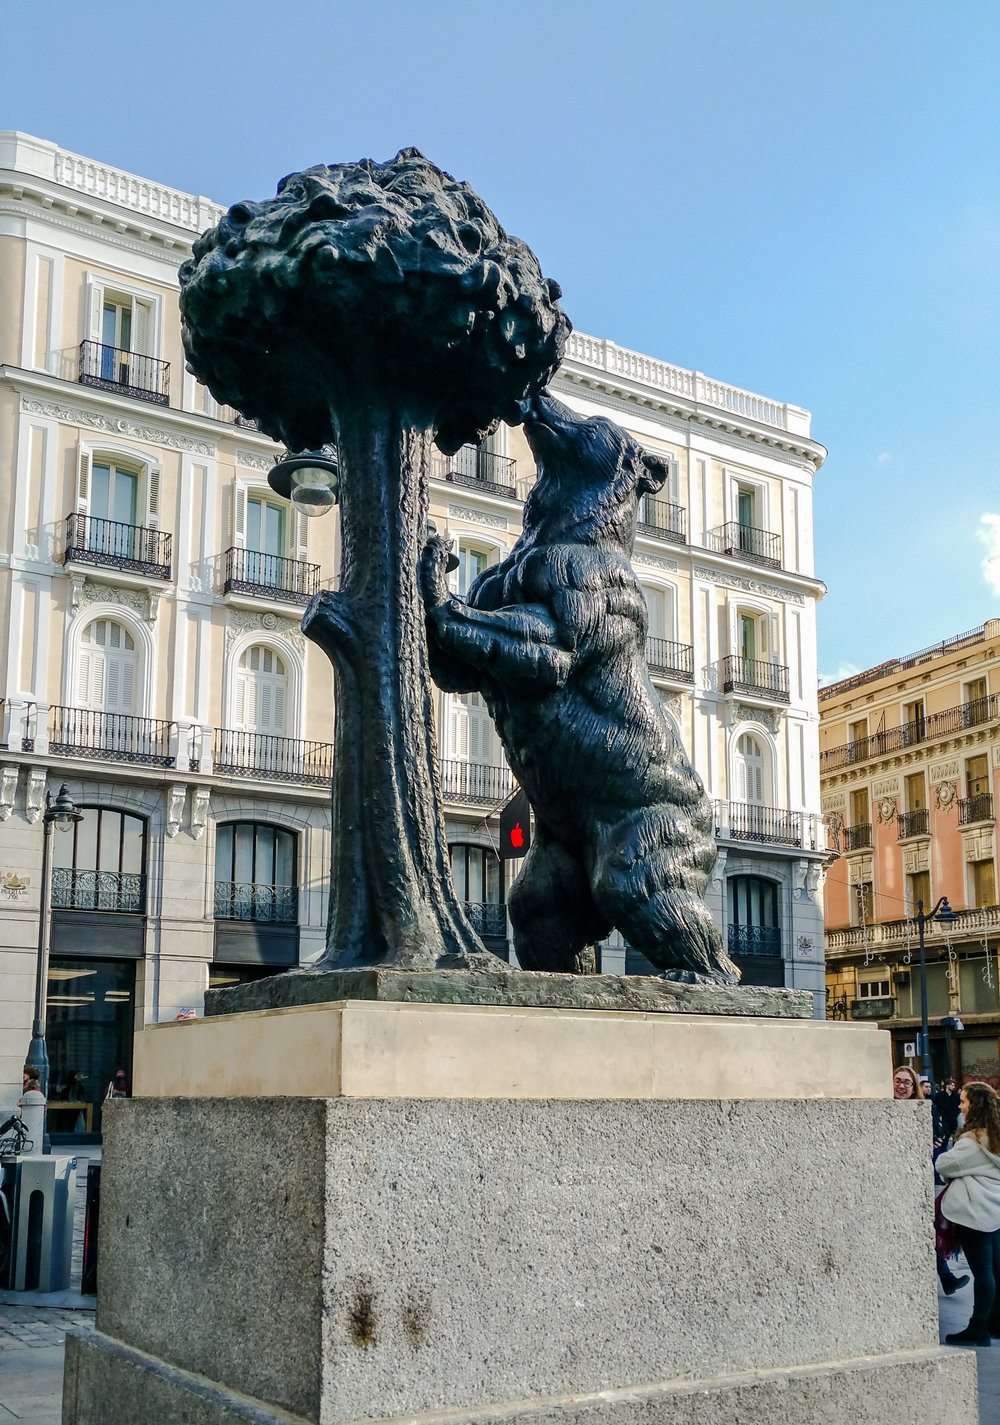 Madrid's bear in Puerta del Sol